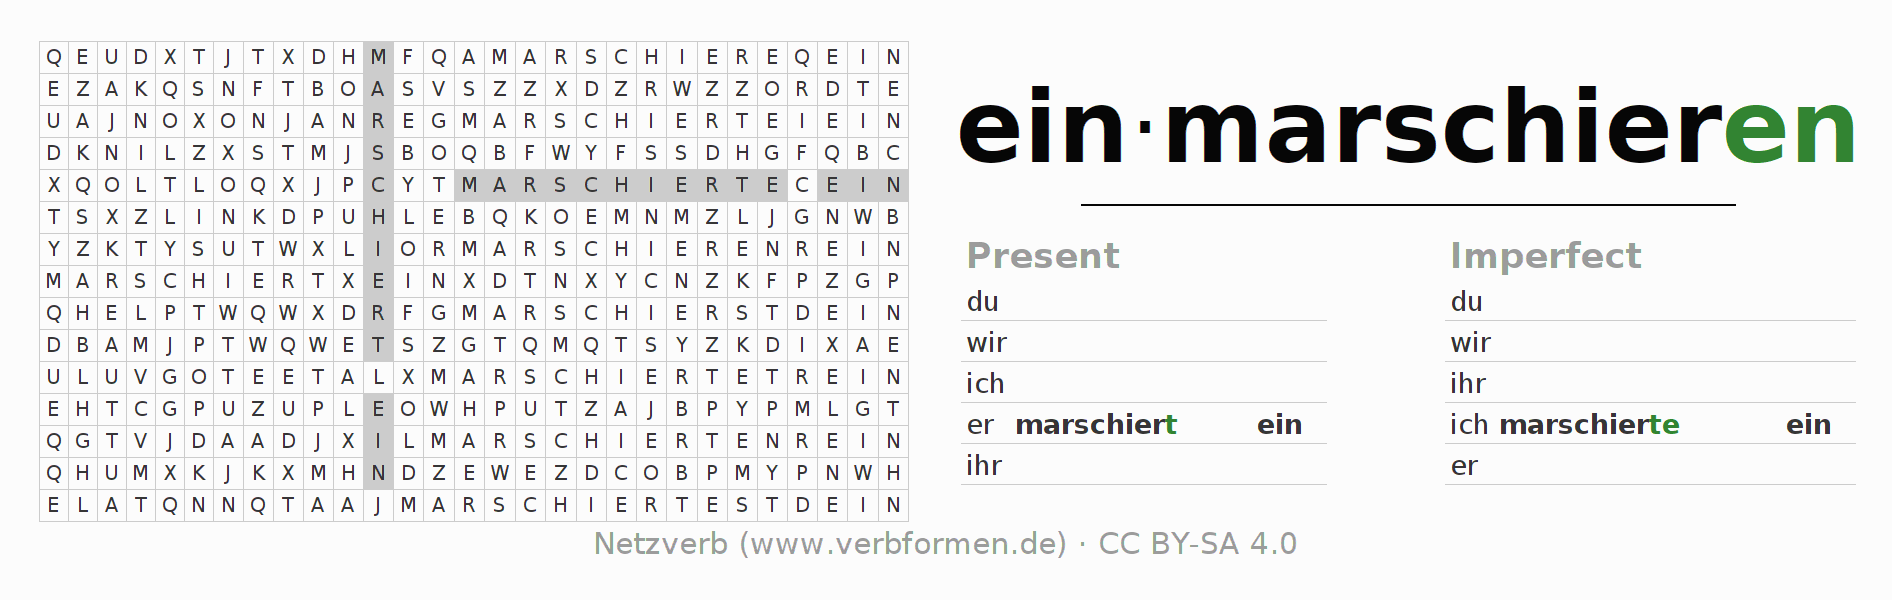 Word search puzzle for the conjugation of the verb einmarschieren